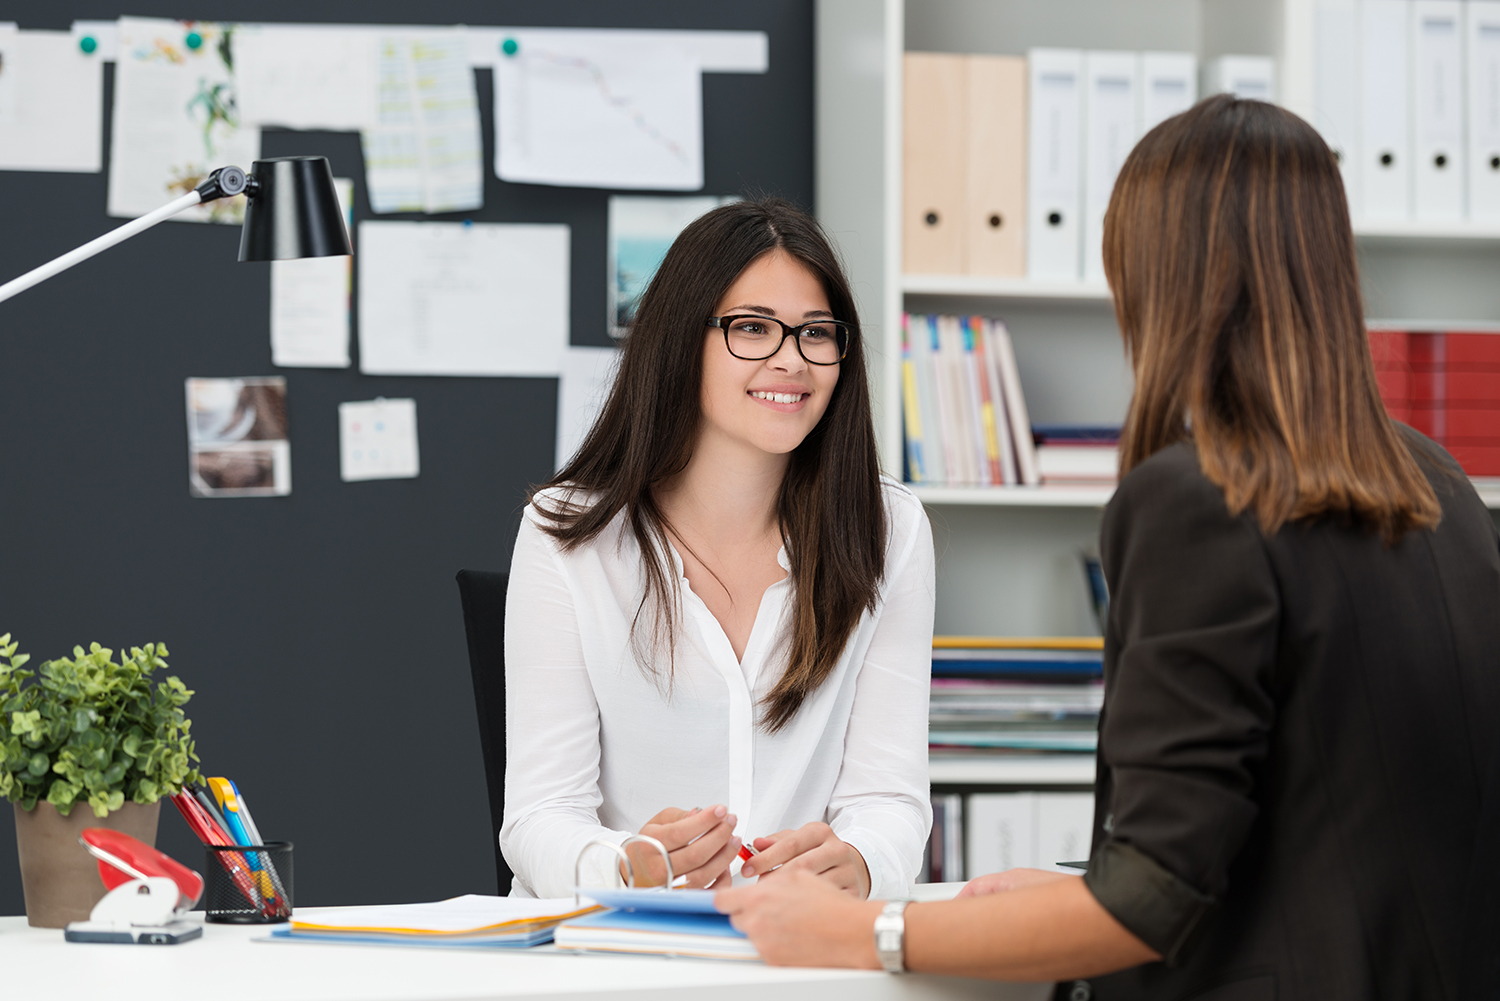 image of two females seated in an office